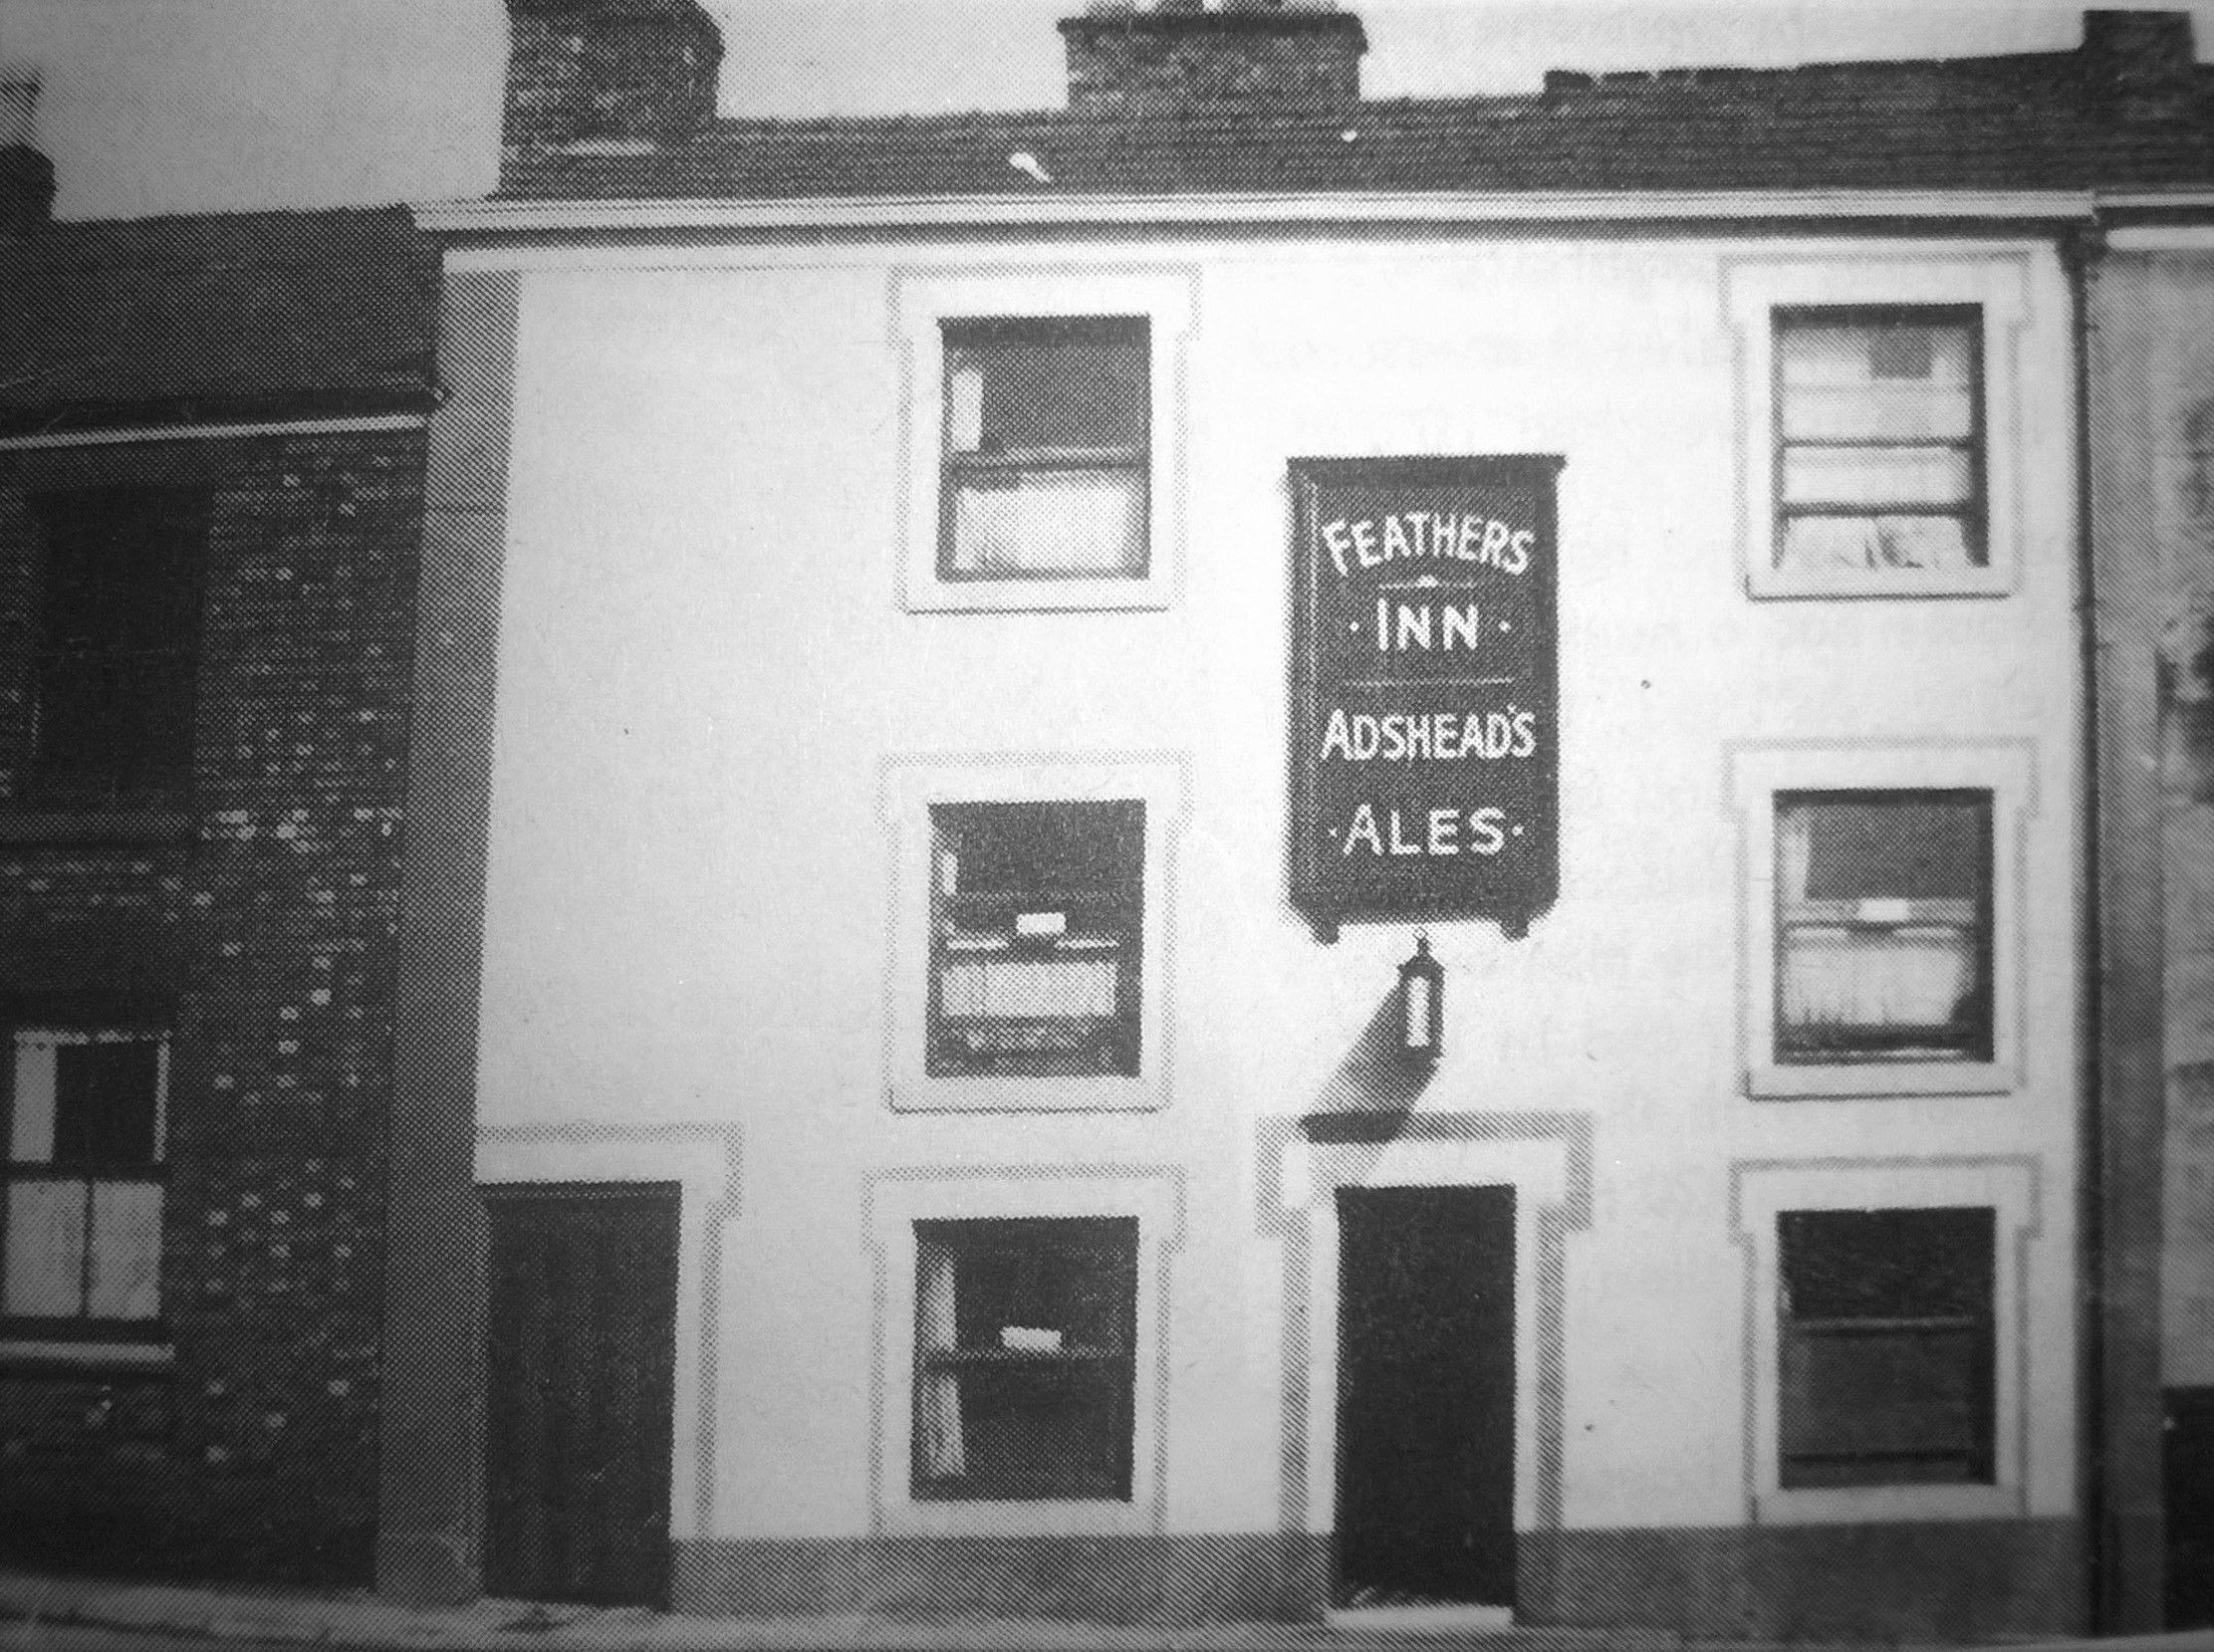 feathers inn brunswick street macclesfield before the police